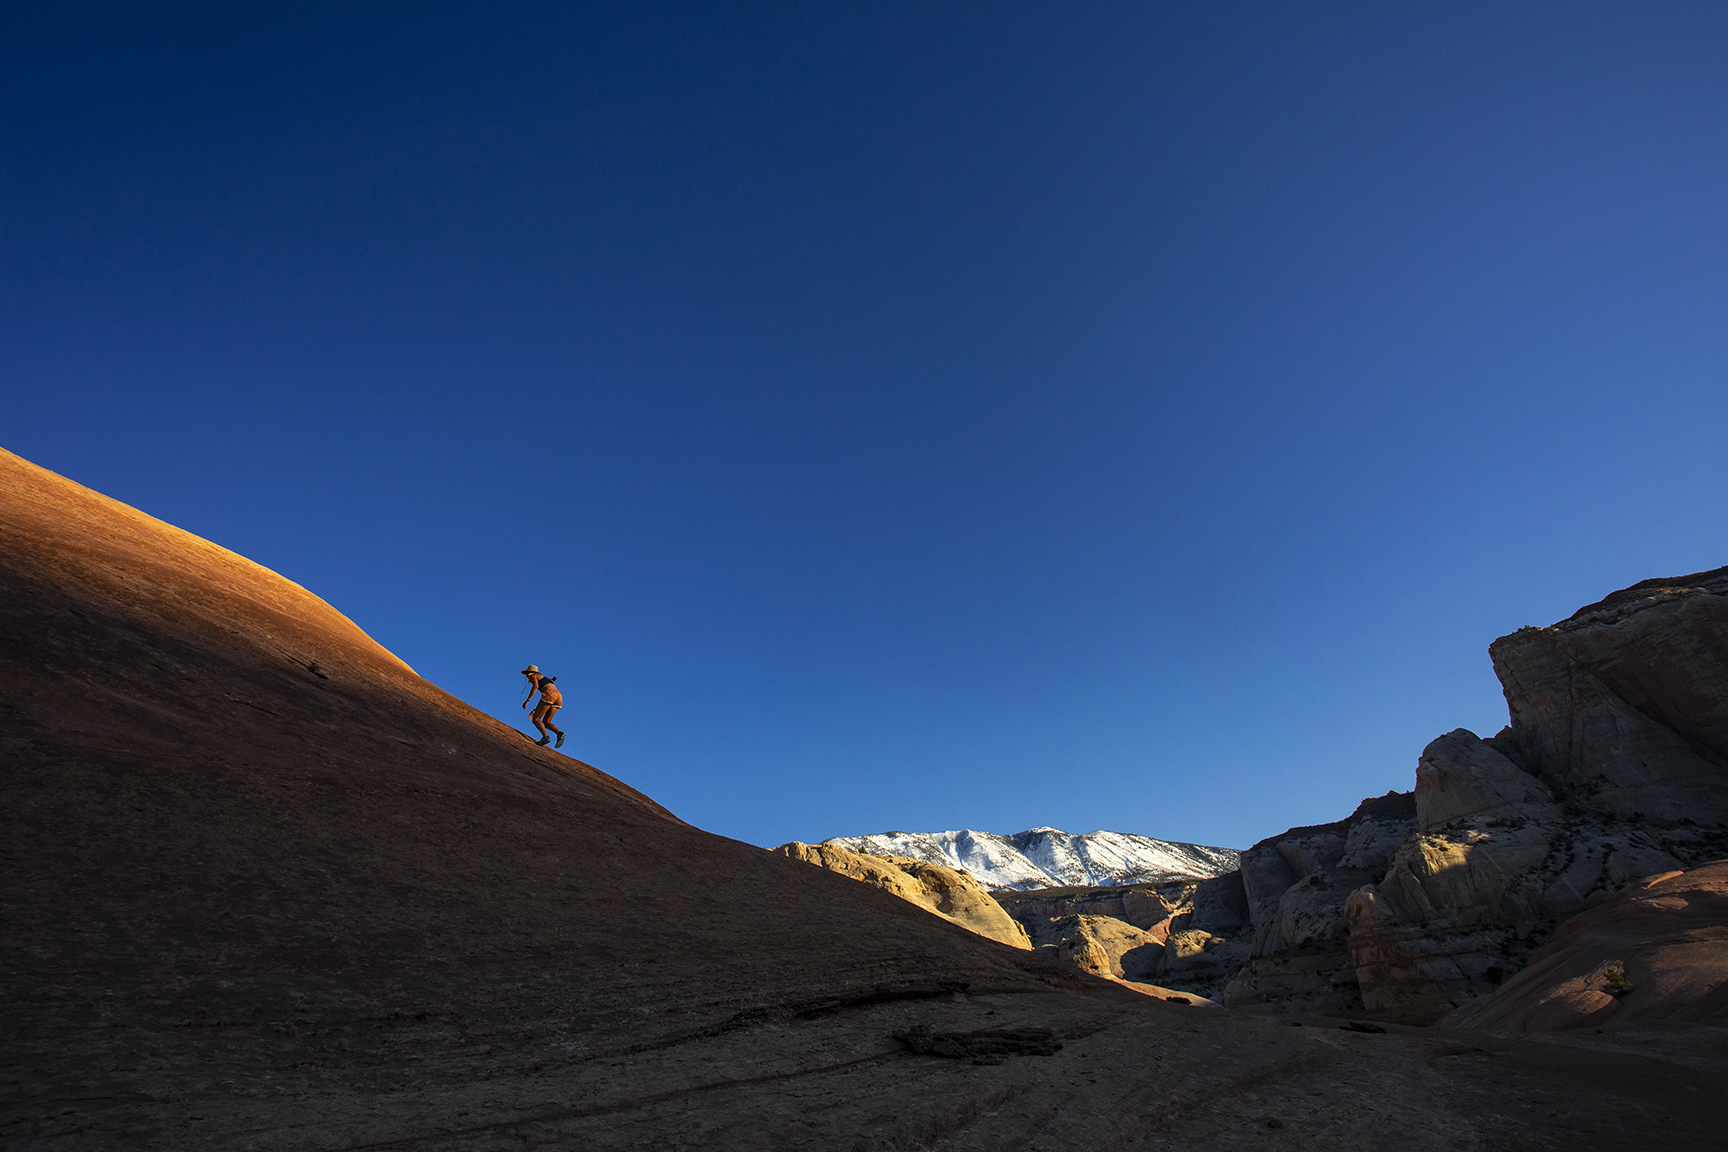 Exploring the expanse of slick rock domes near the Rainbow Trail. Photo by Stephen Eginoire